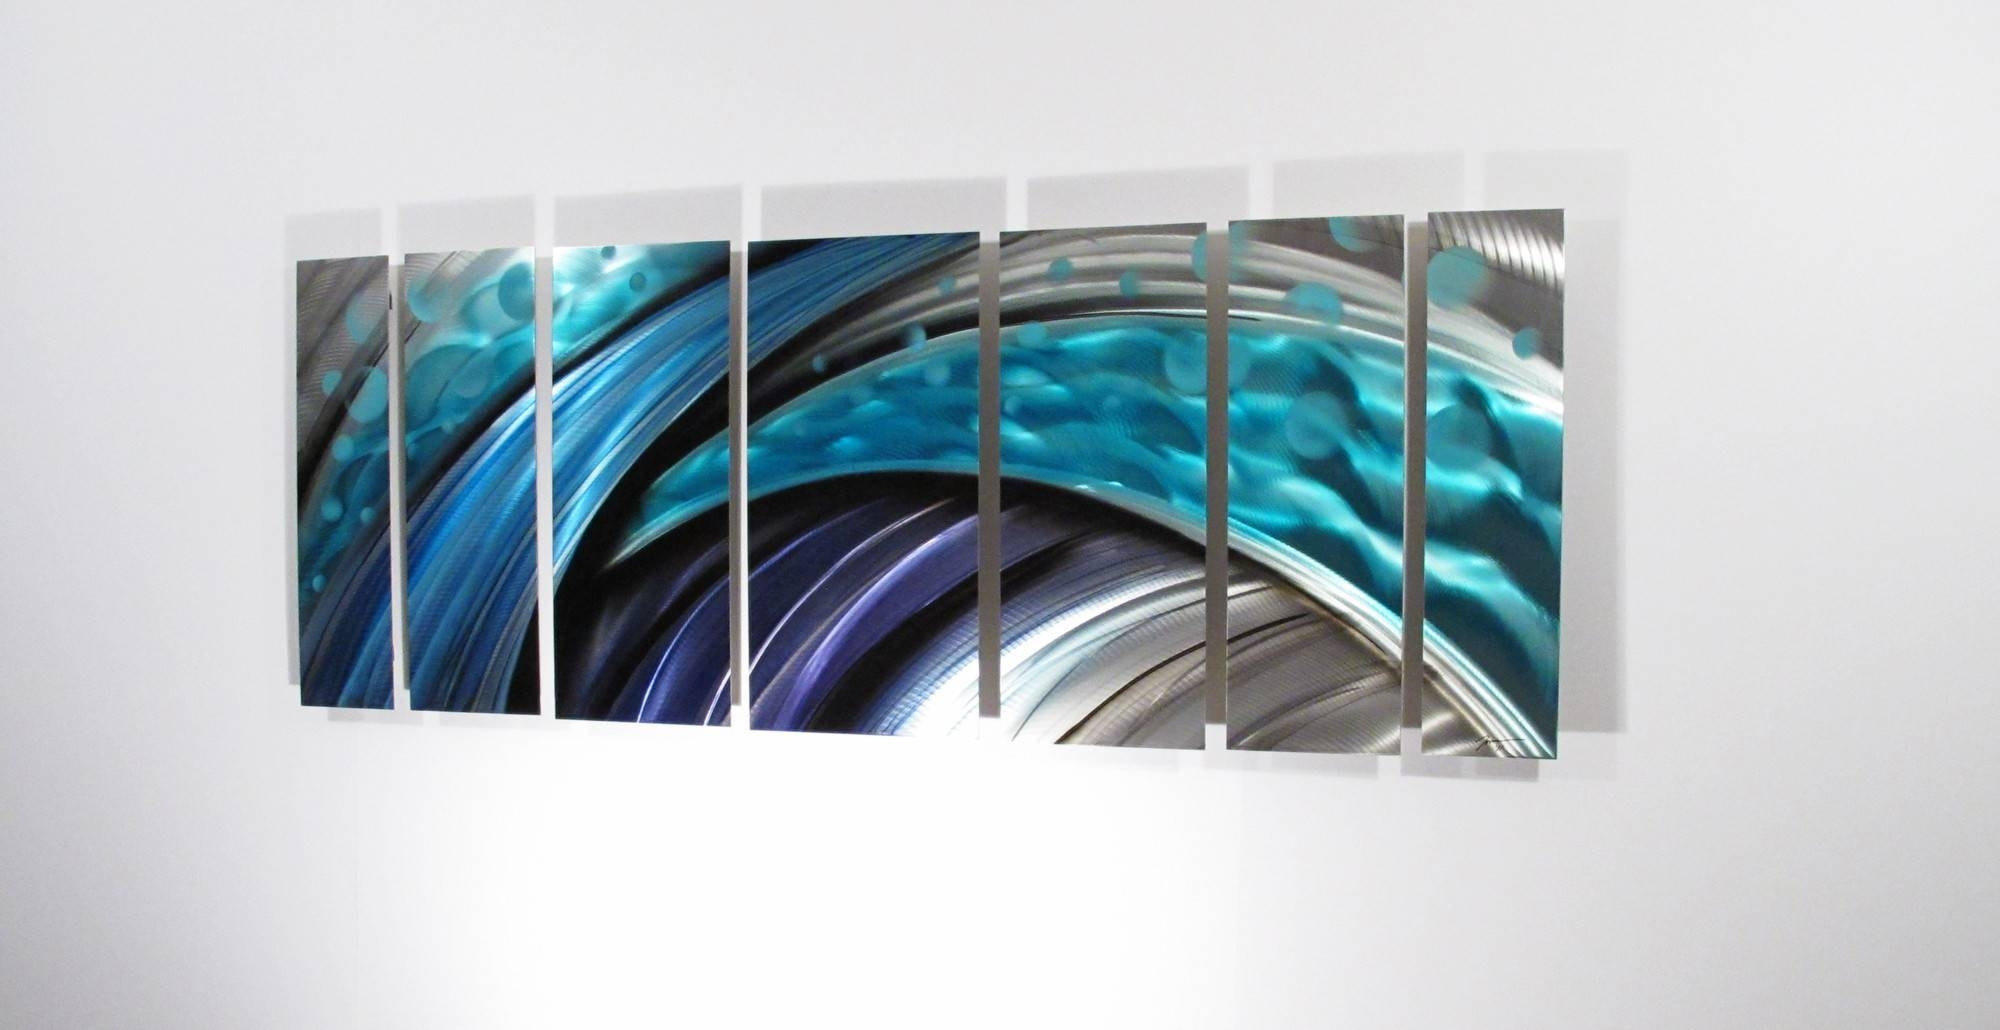 Wall Art Designs: Abstract Metal Wall Art Modern Abstract Metal Inside Most Popular Metal Abstract Wall Art (View 12 of 15)